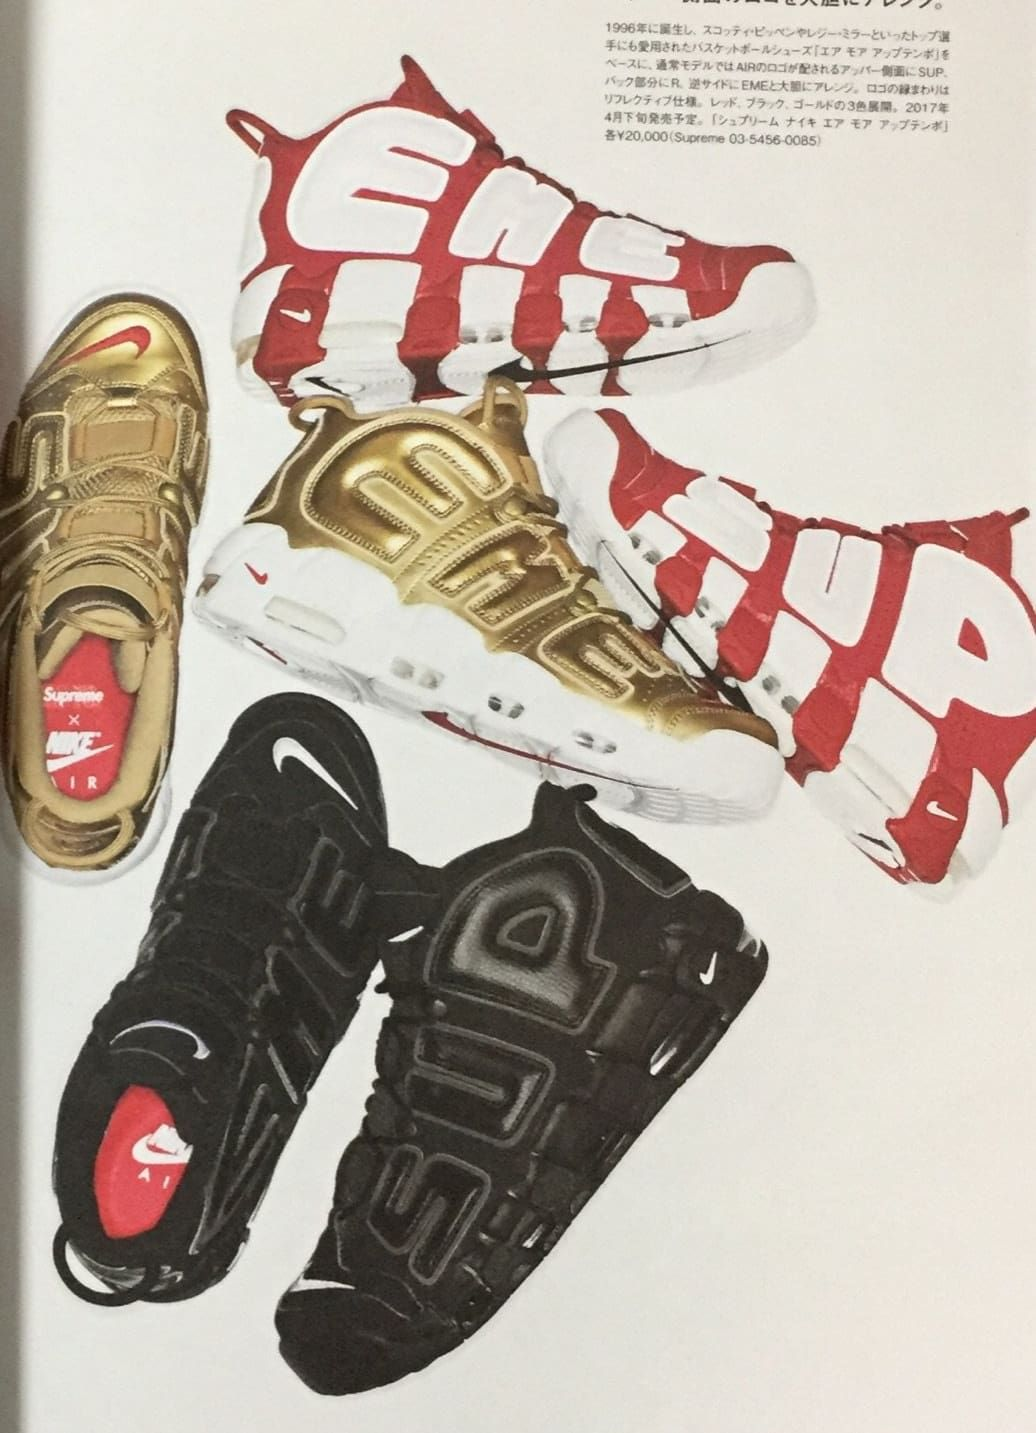 buy popular db01f 1acc8 An Exclusive Look At The Supreme x Nike Air Uptempo Pack. Find this Pin and  more on Shoes ...